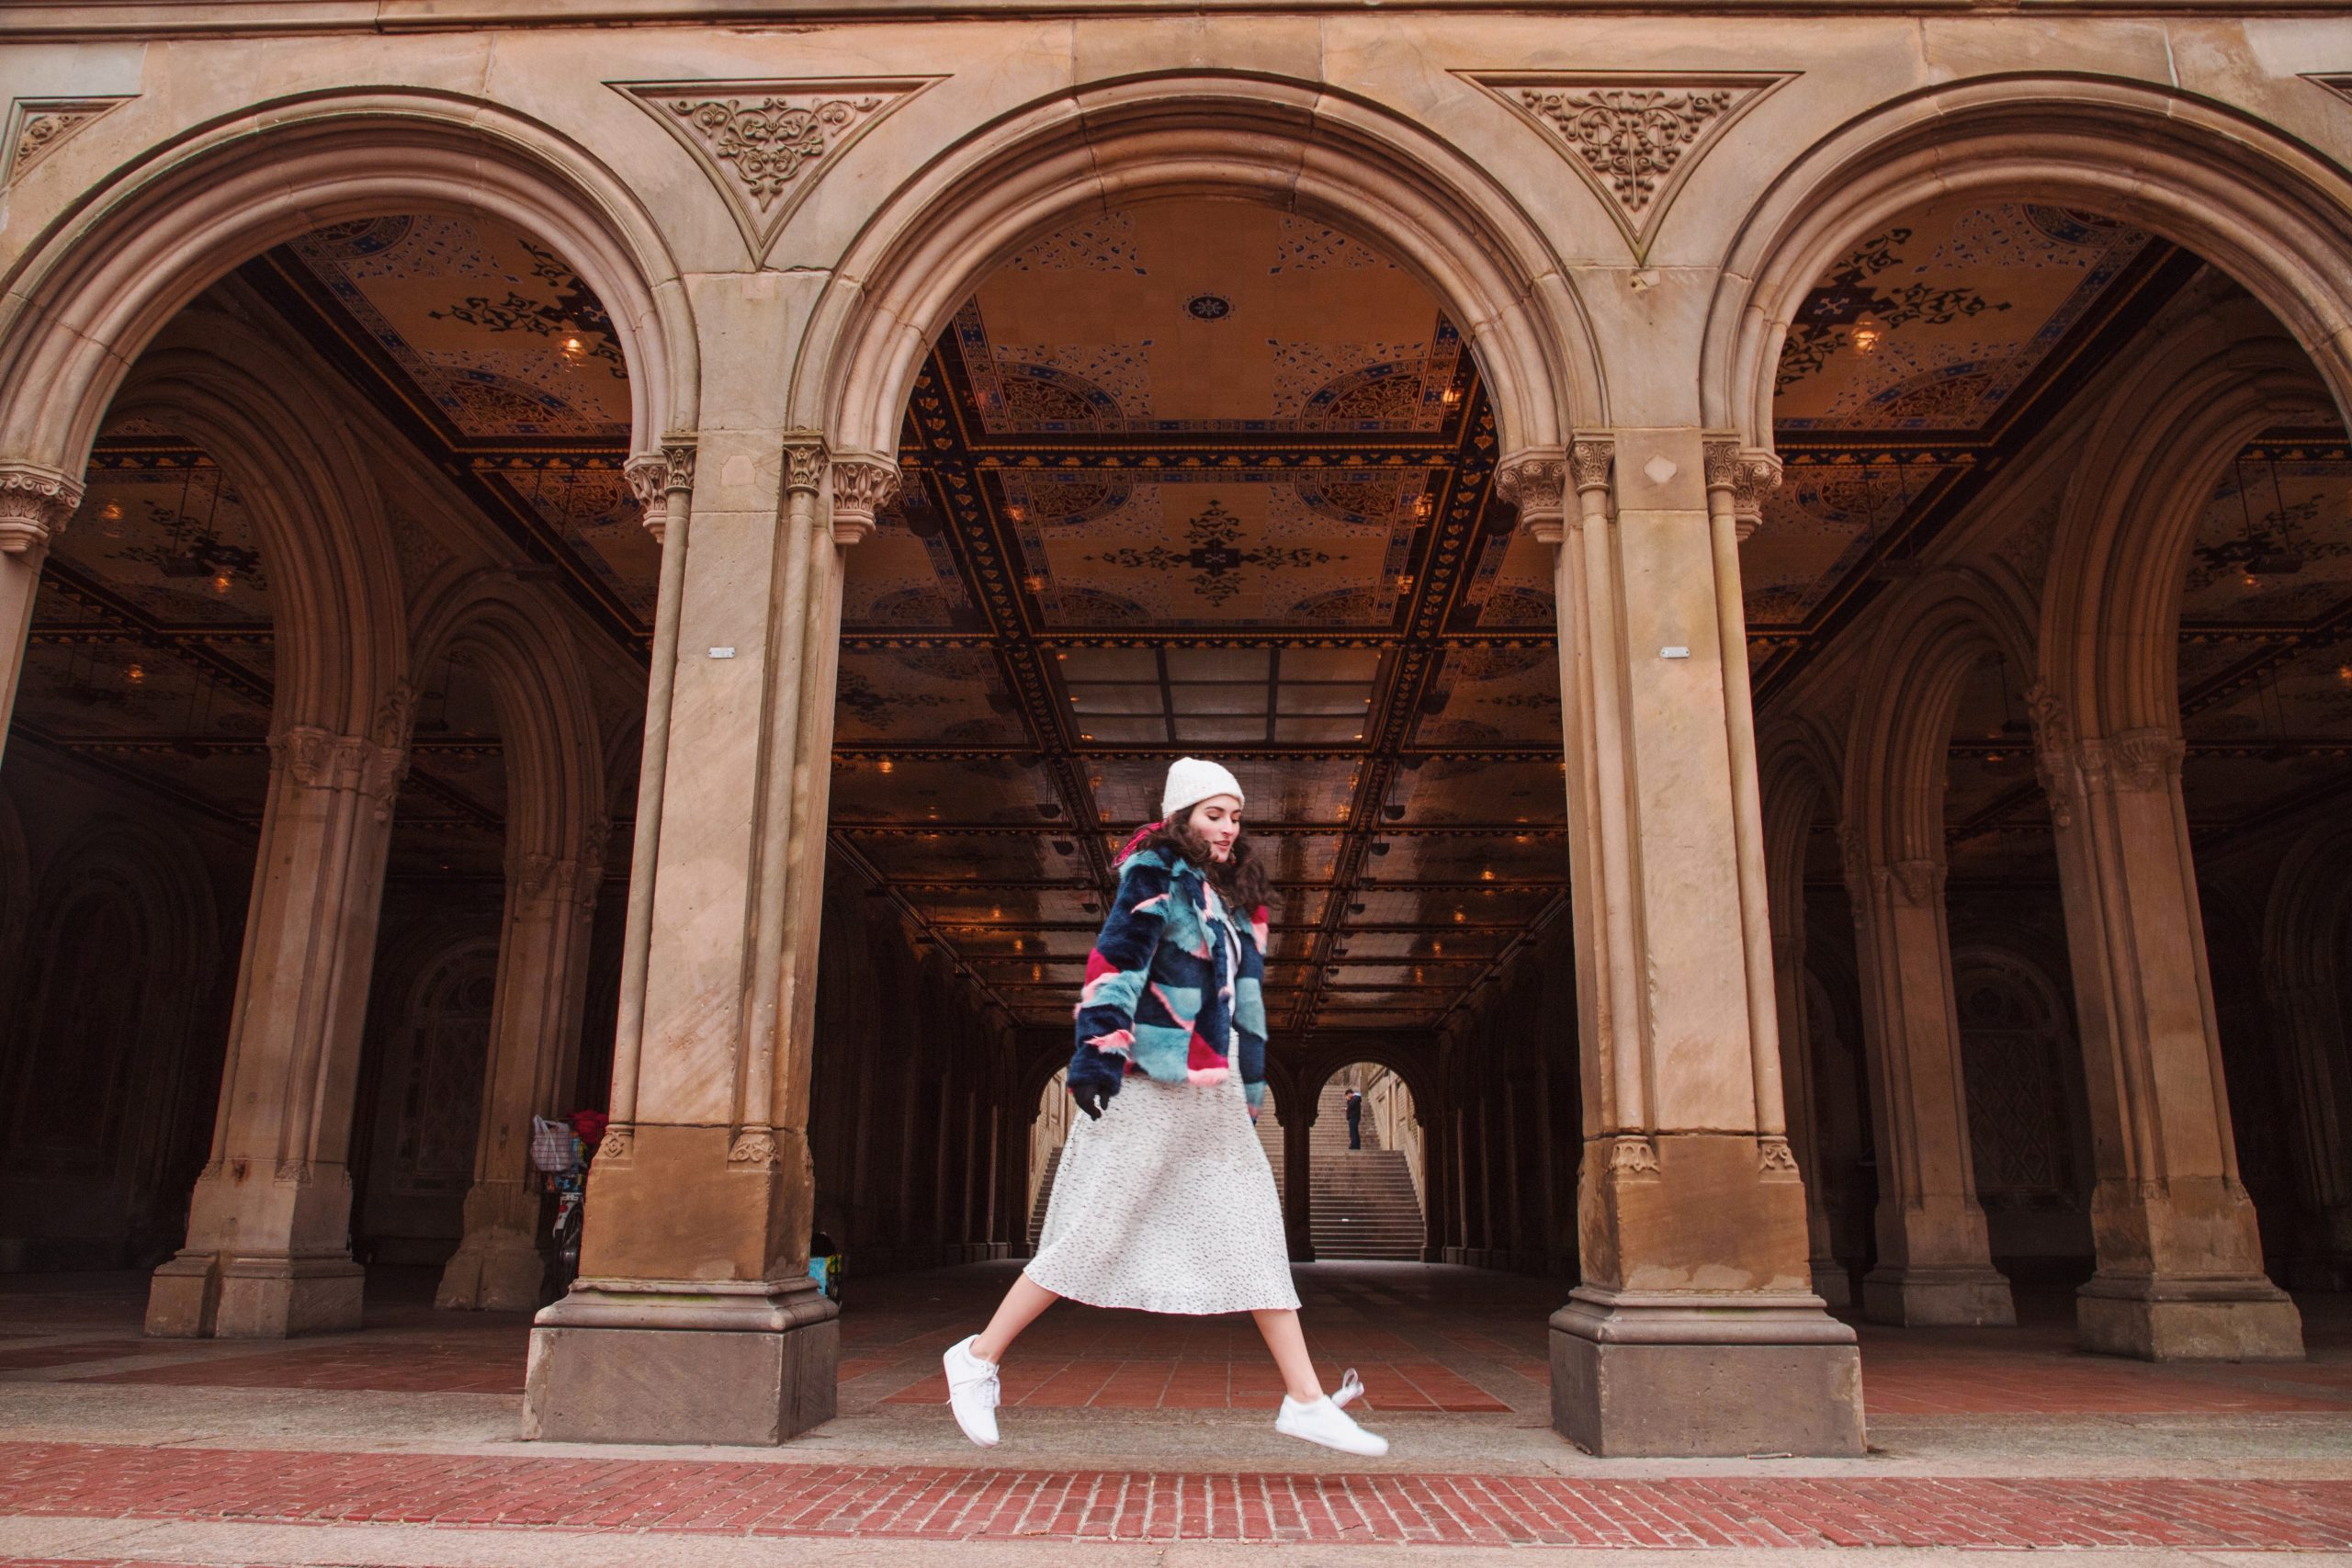 What to visit in Manhattan as a first timer - BETHESDA FOUNTAIN